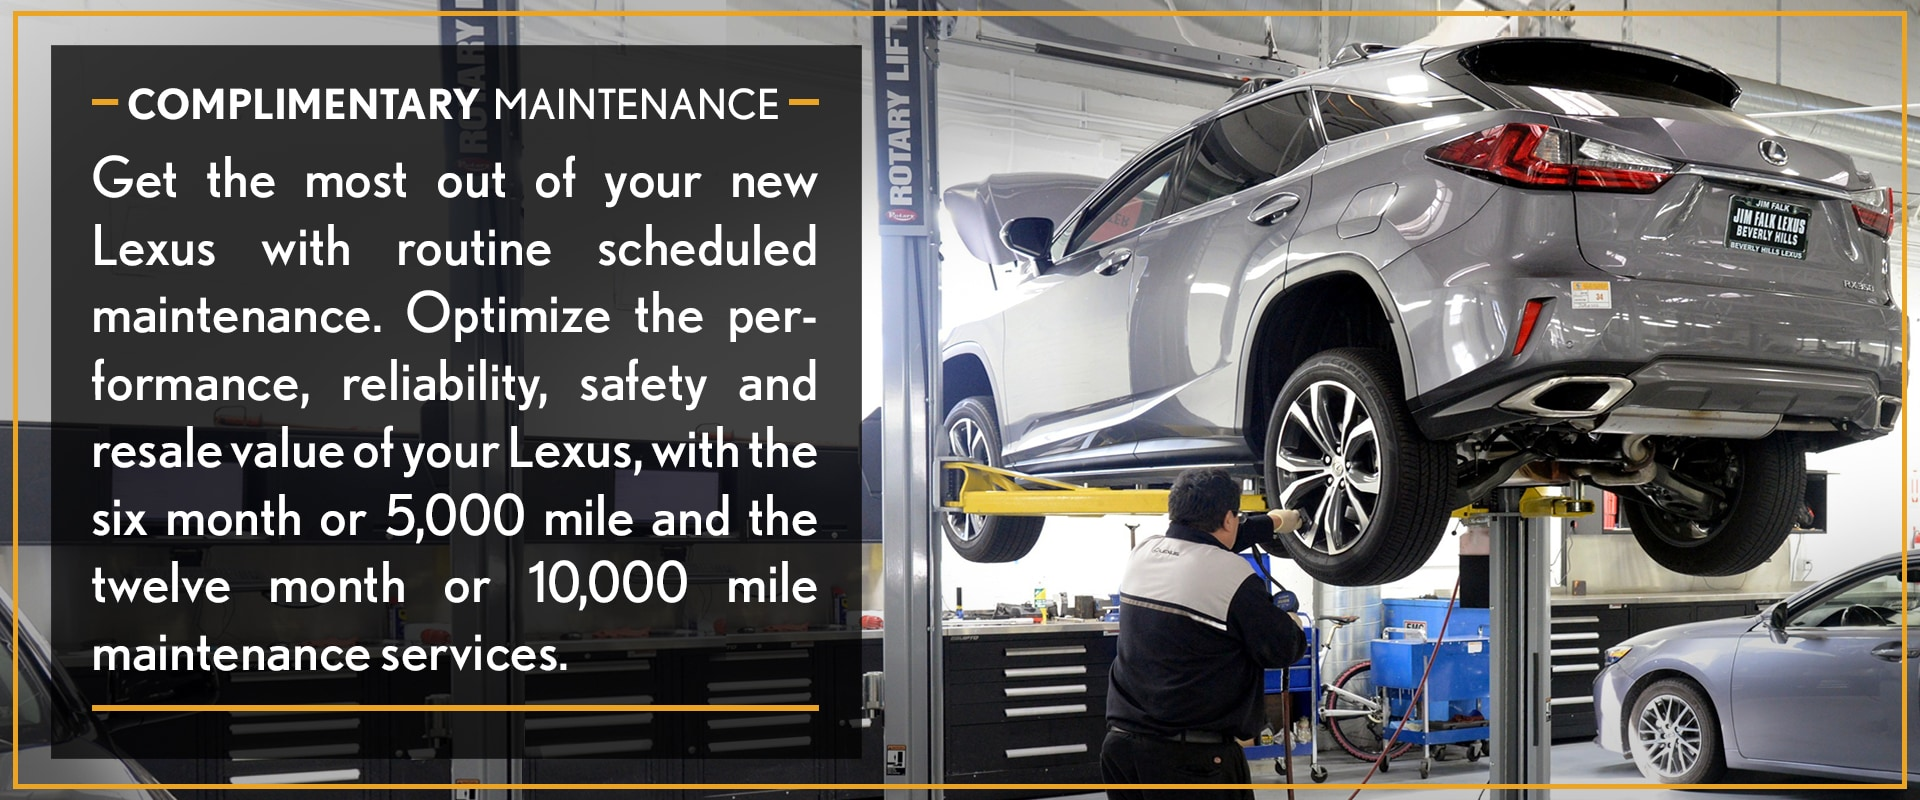 get the most out of your new lexus with routine scheduled maintenance optimize the performance reliability safety and resale value of your lexus